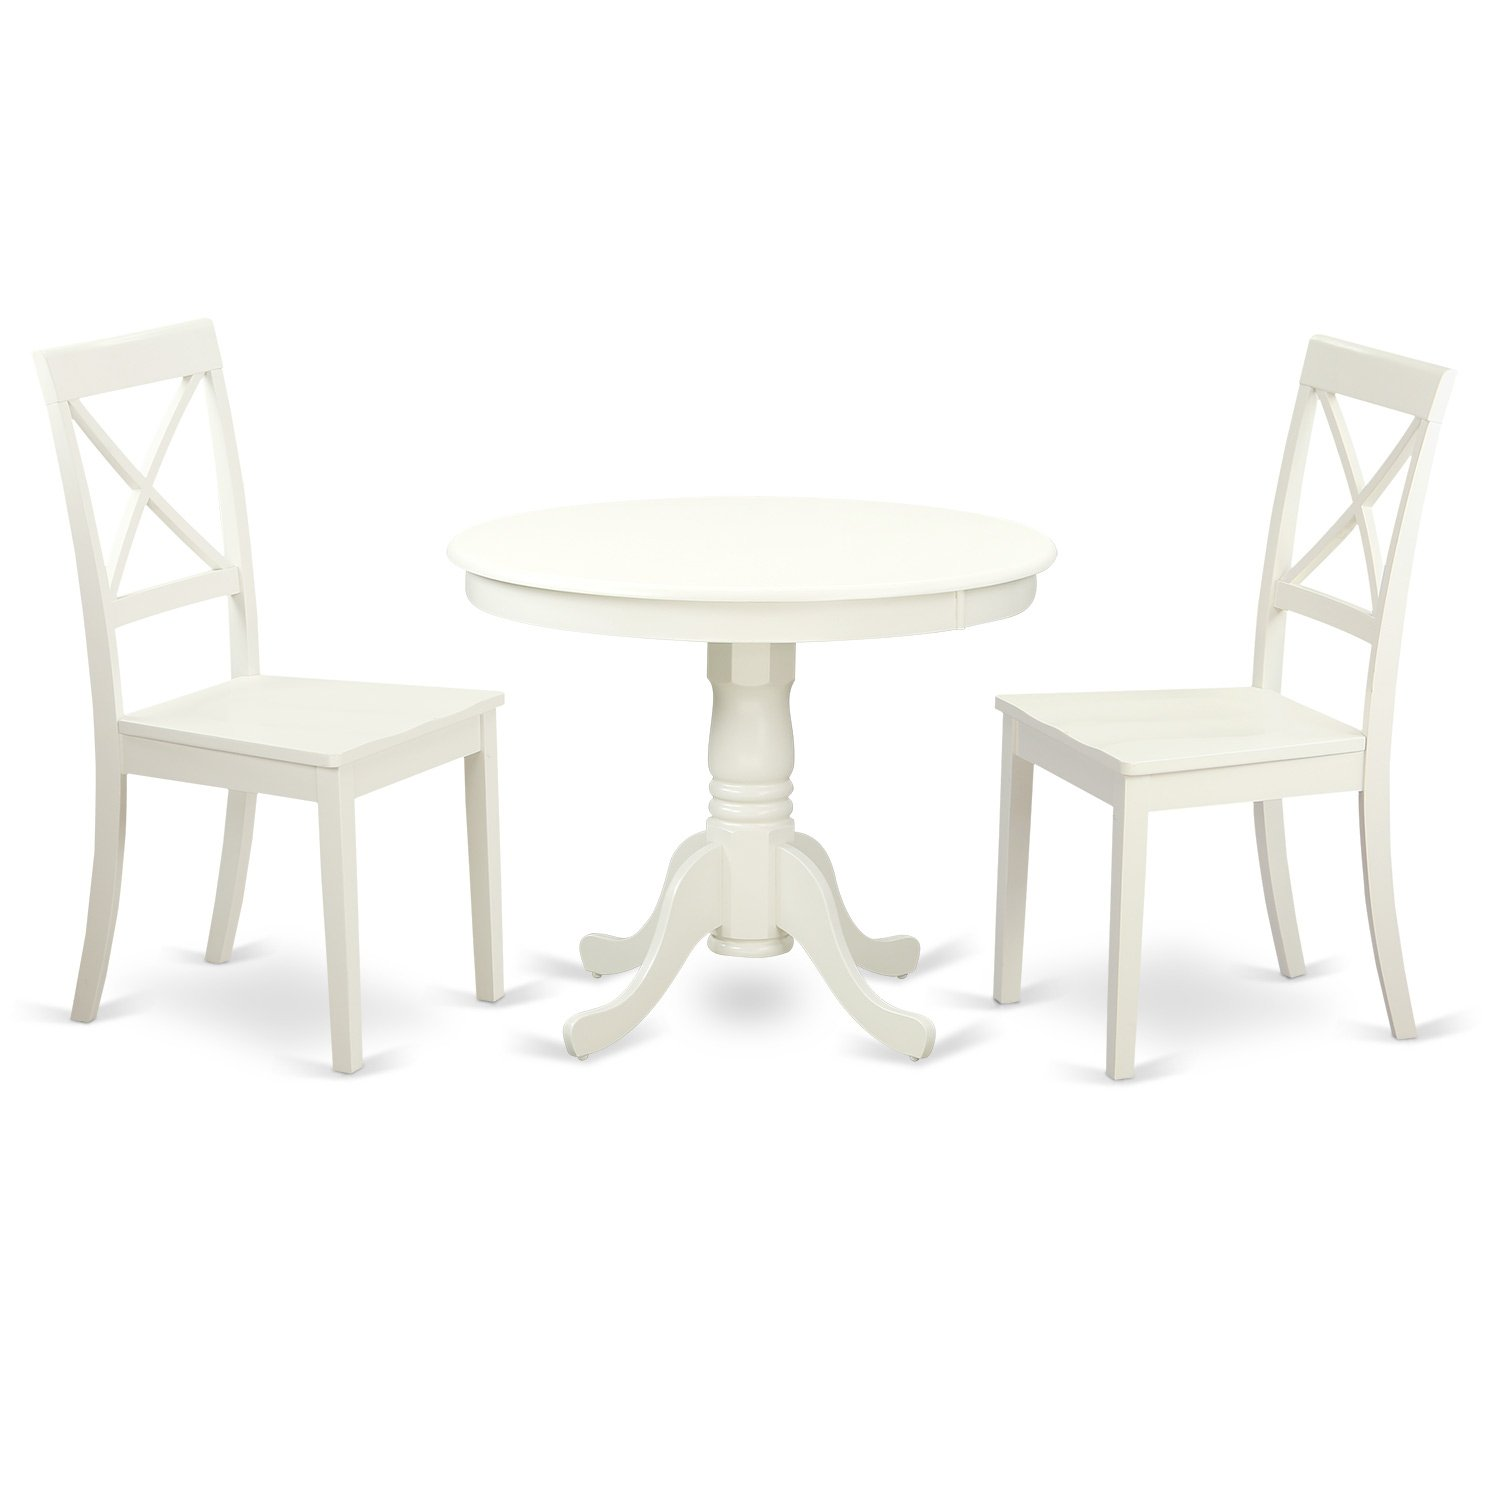 Details about 3 PC Antique Dining Room Set Round Table & 2 Solid Wood  Kitchen Chairs in White